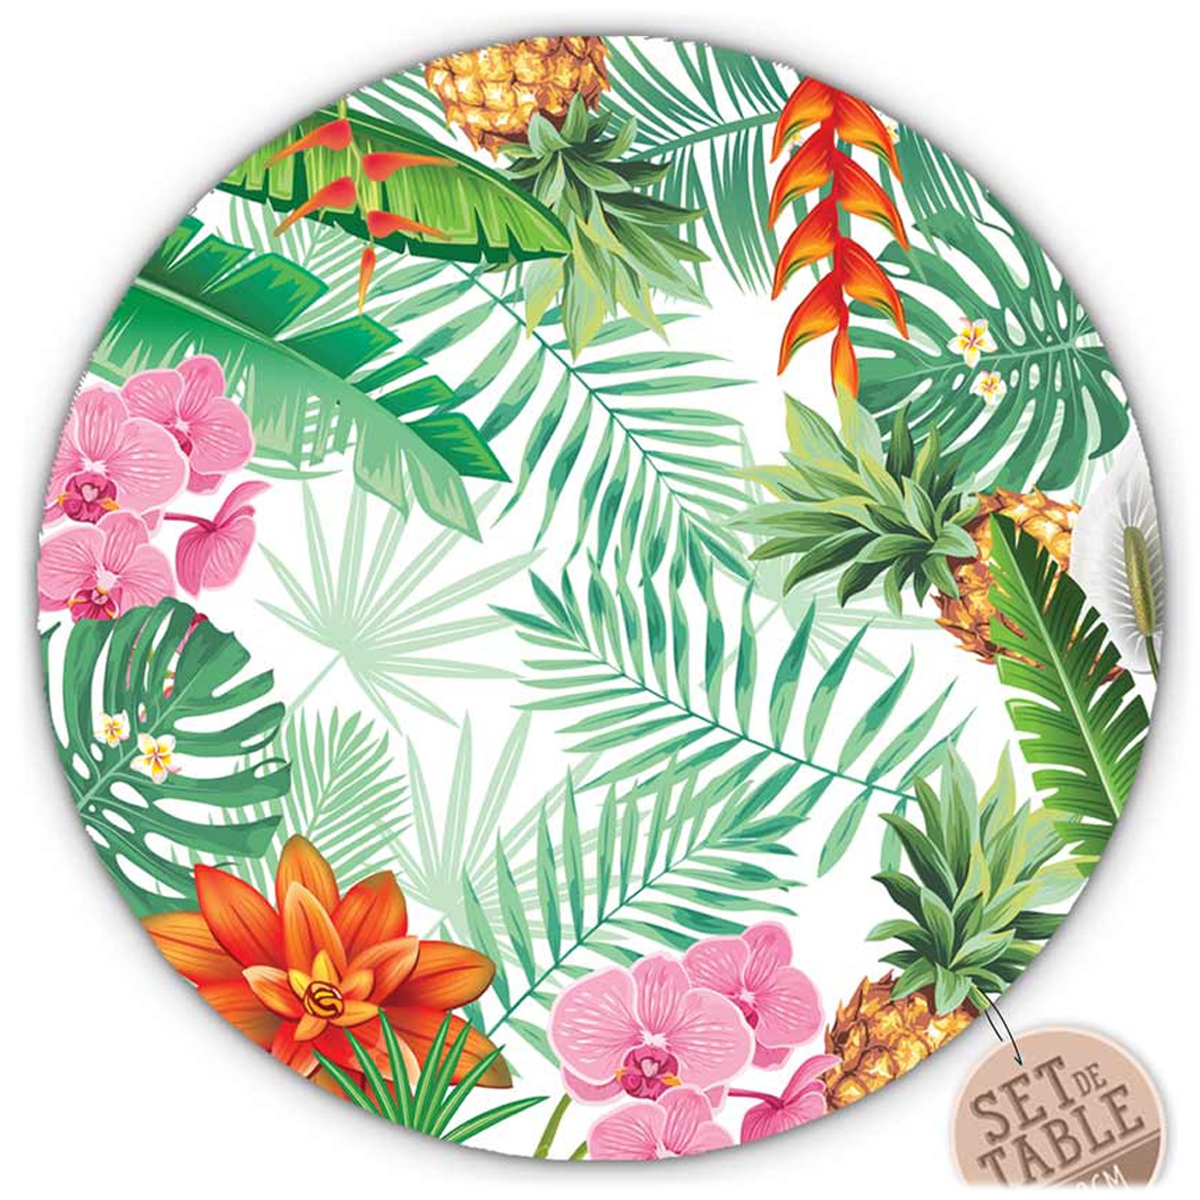 Set de table plastifié \'Tropical\' rose vert (orchidées, feuilles) - 38 cm - [R1619]